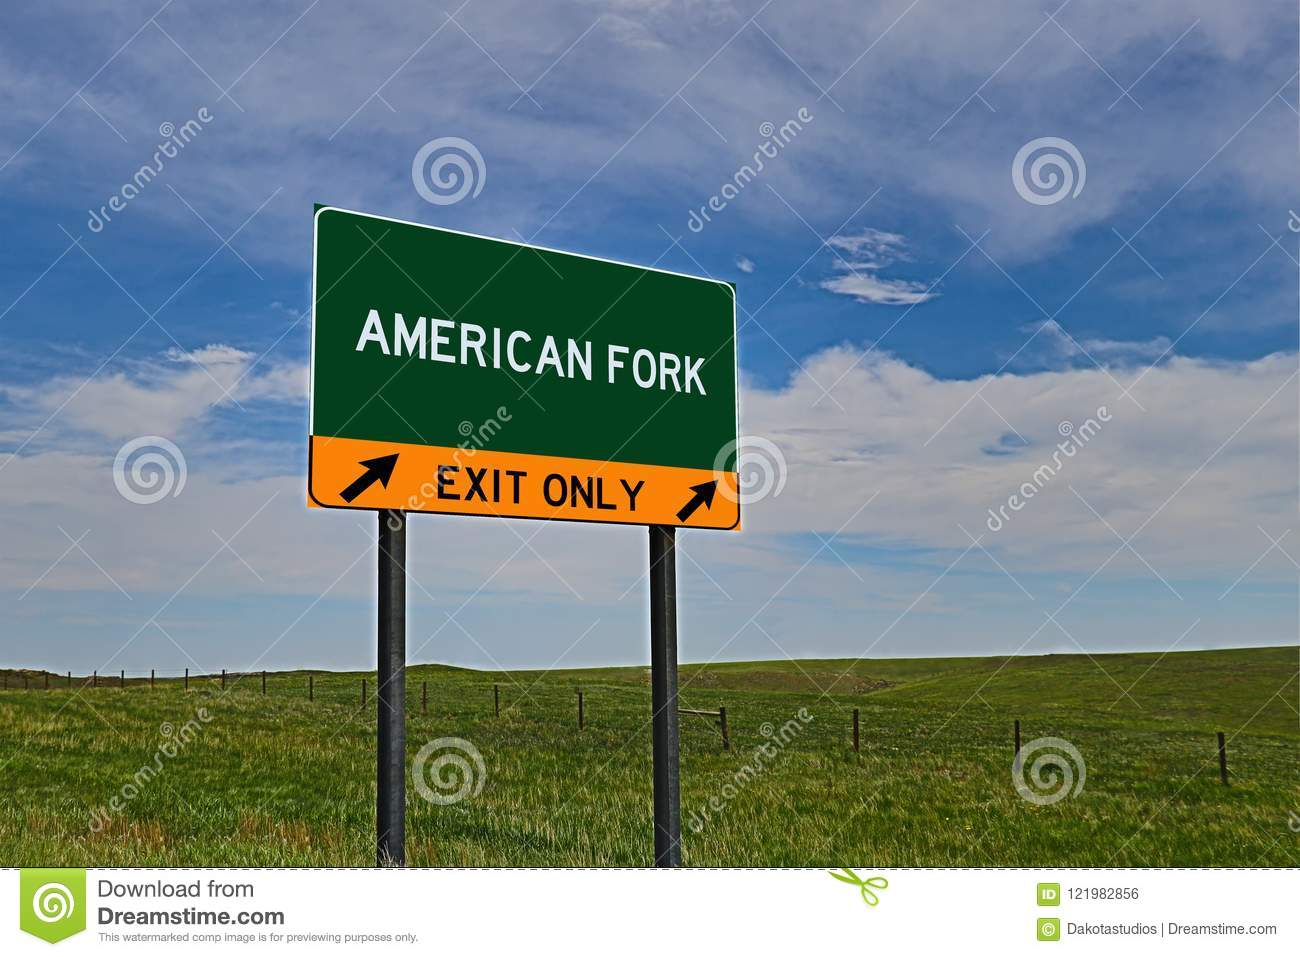 US Highway Exit Sign for American Fork